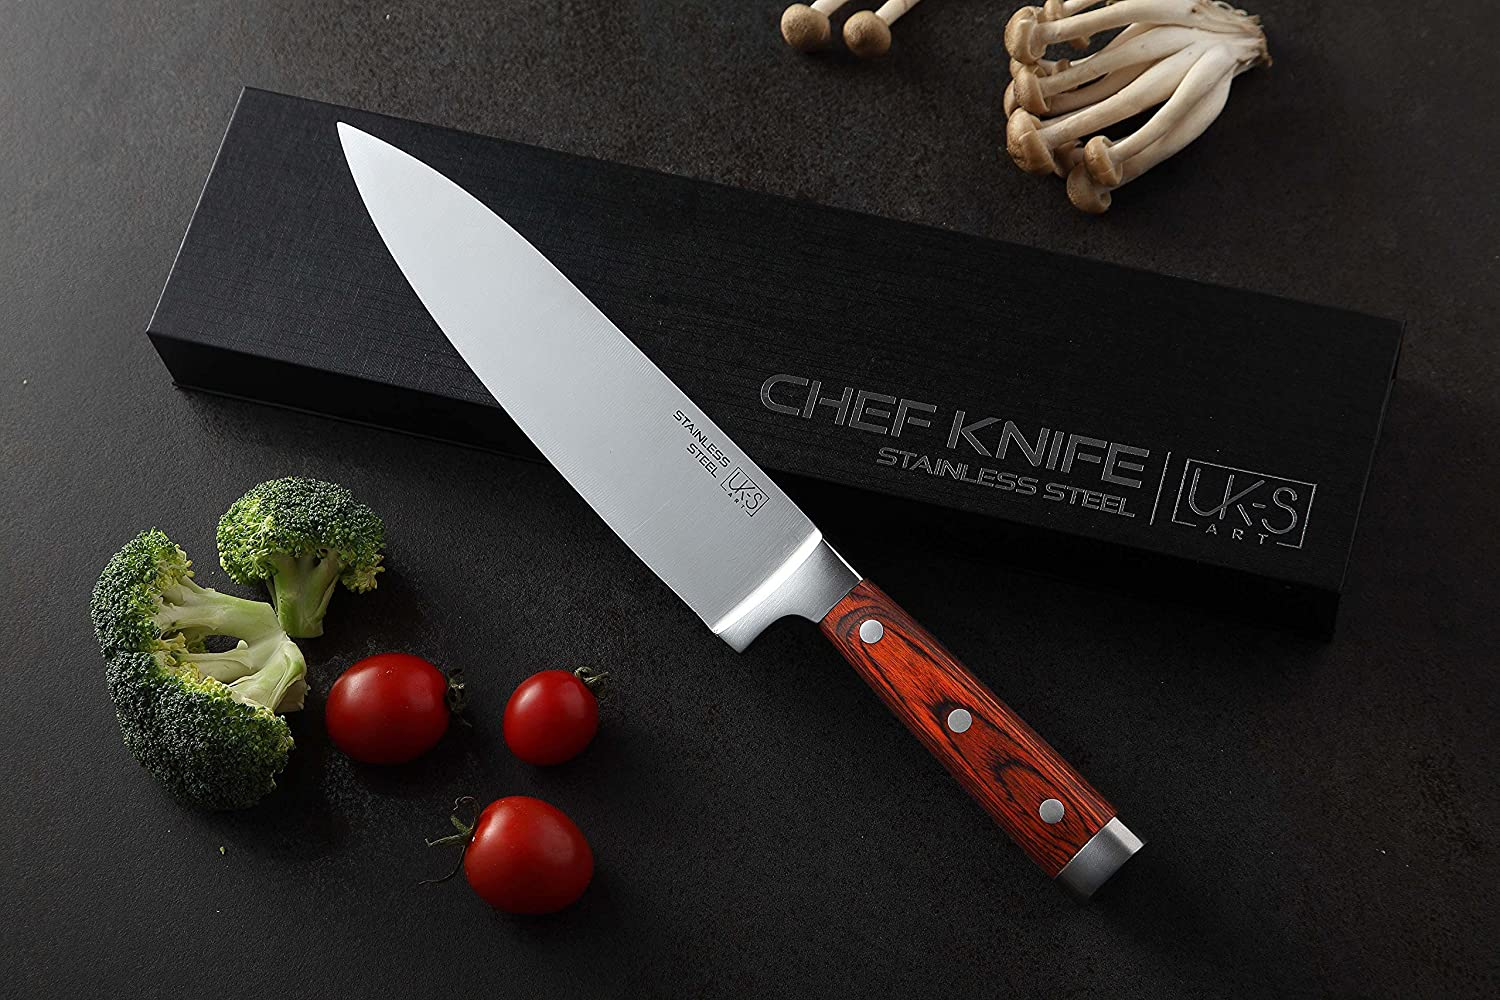 Küchenmesser Profi 20 cm UK-S Art Premium Chef-Messer Ultrascharfe ...